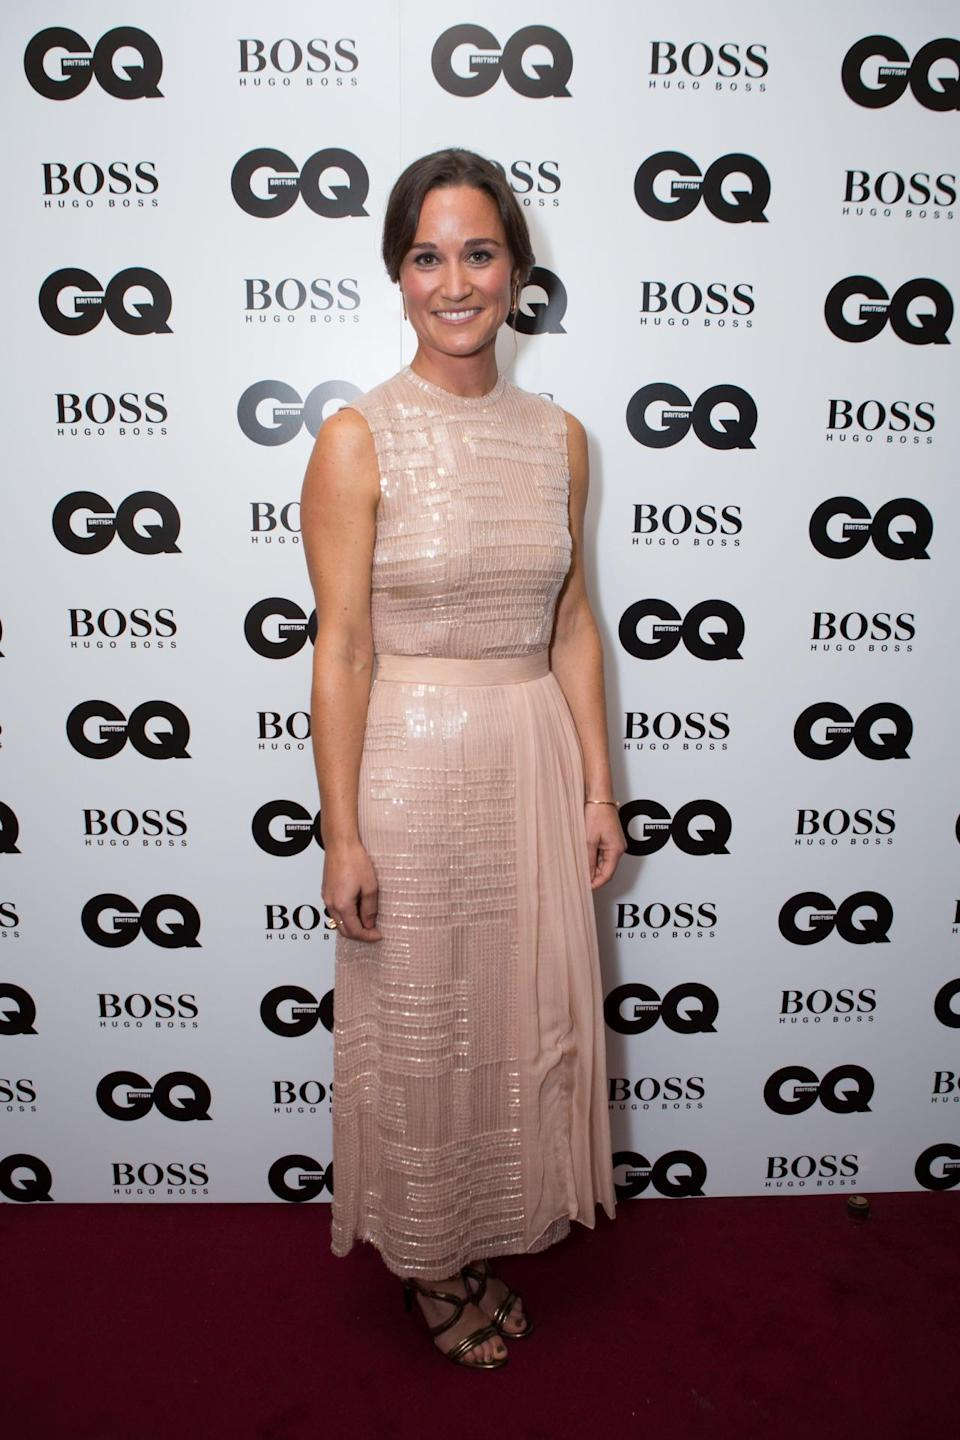 <p>Pippa got her glam on in a sequin encrusted Hugo Boss midi dress at the GQ Men of the Year awards in September 2014. <i>[Photo: PA Images]</i> </p>